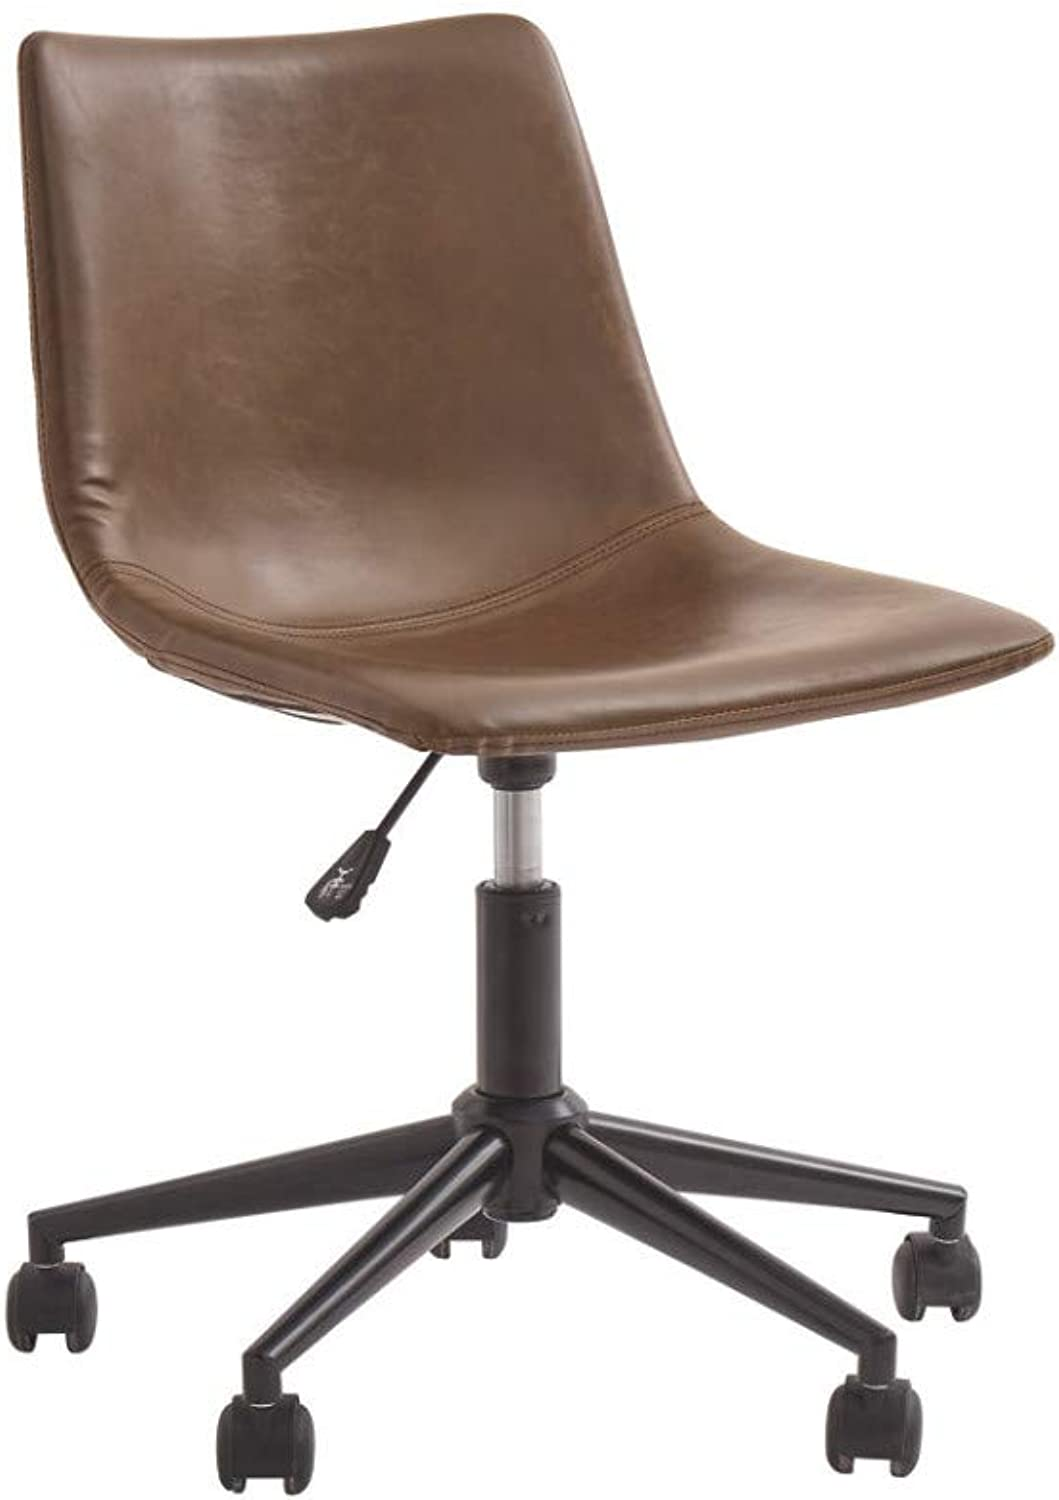 Benzara BM190090 Metal Swivel Chair with Faux Leather Upholstery and Adjustable Seat, Brown and Black